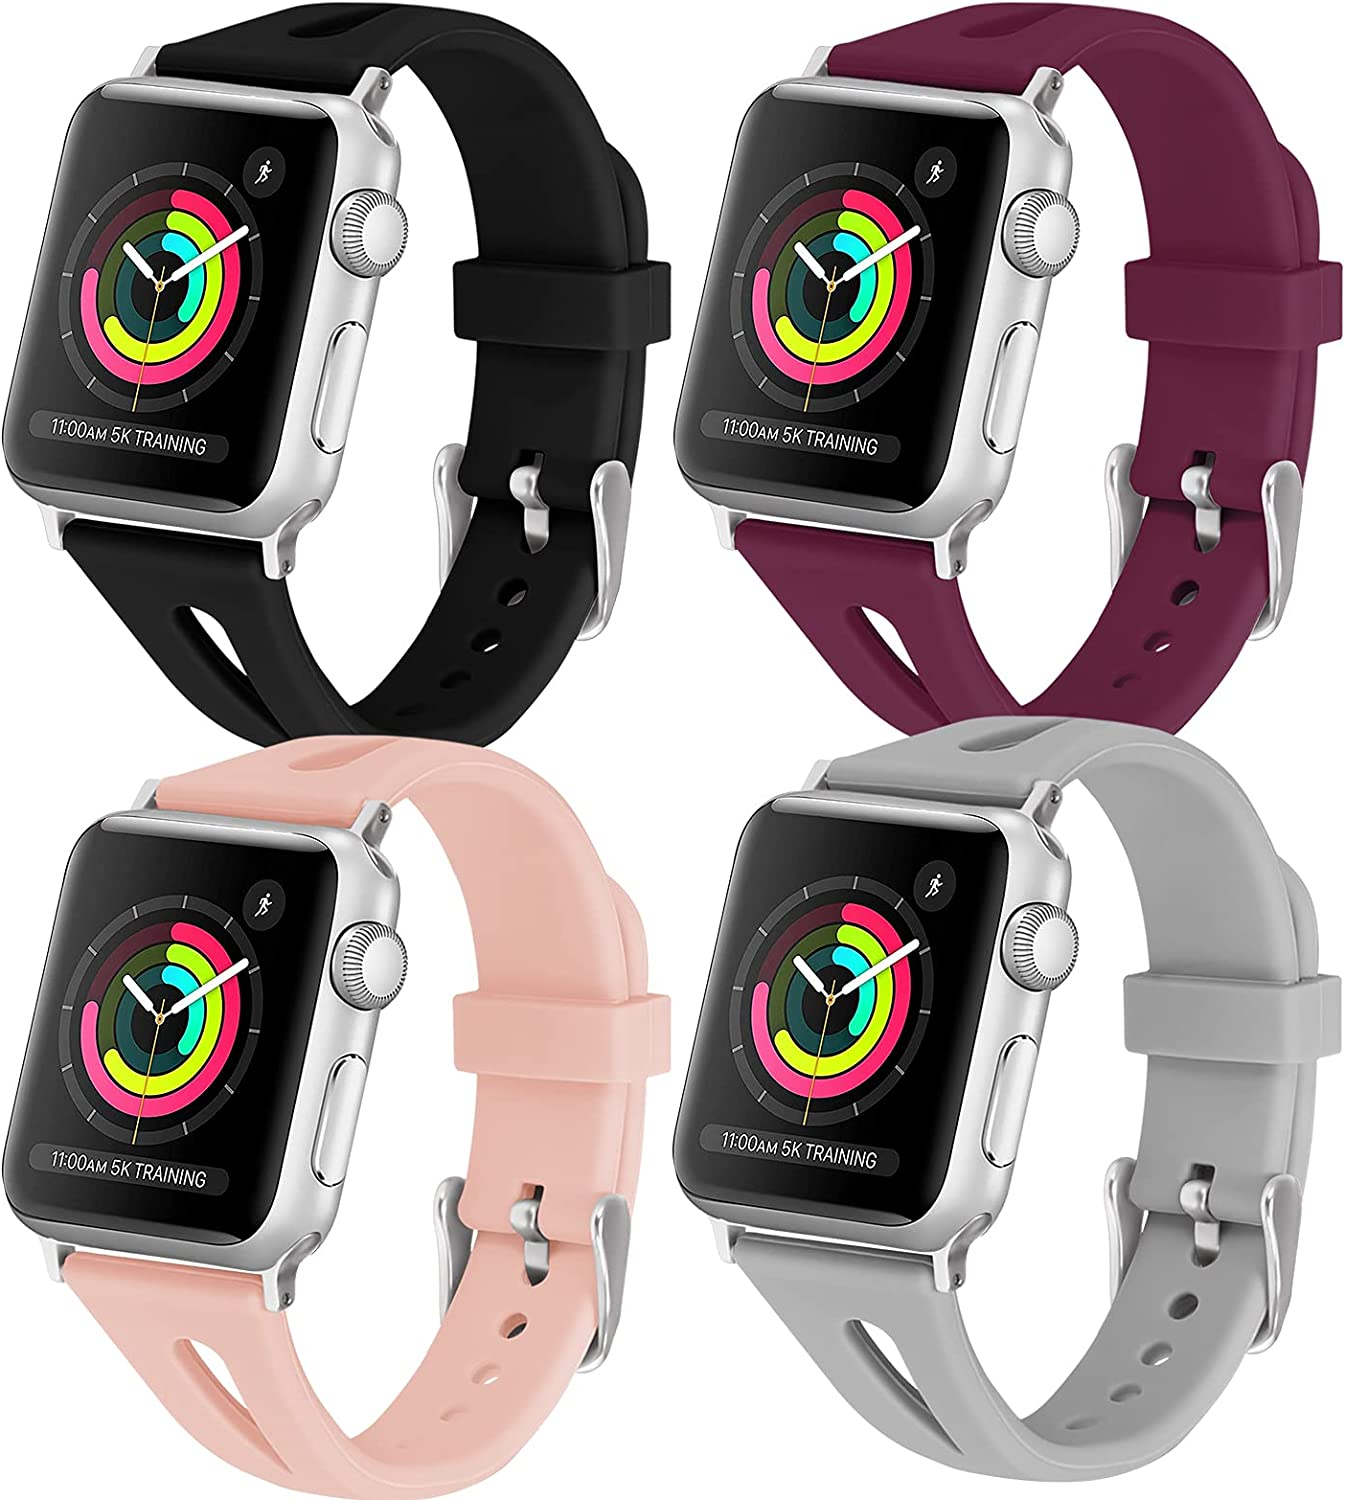 iHillon 4 Pack Compatible with Apple Watch Bands Men Women 44mm 42mm 40mm 38mm, Soft Silicone Slim Sport Replacement Wristbands Compatible with Apple Watch Series 6/5/4/3/2/1/SE